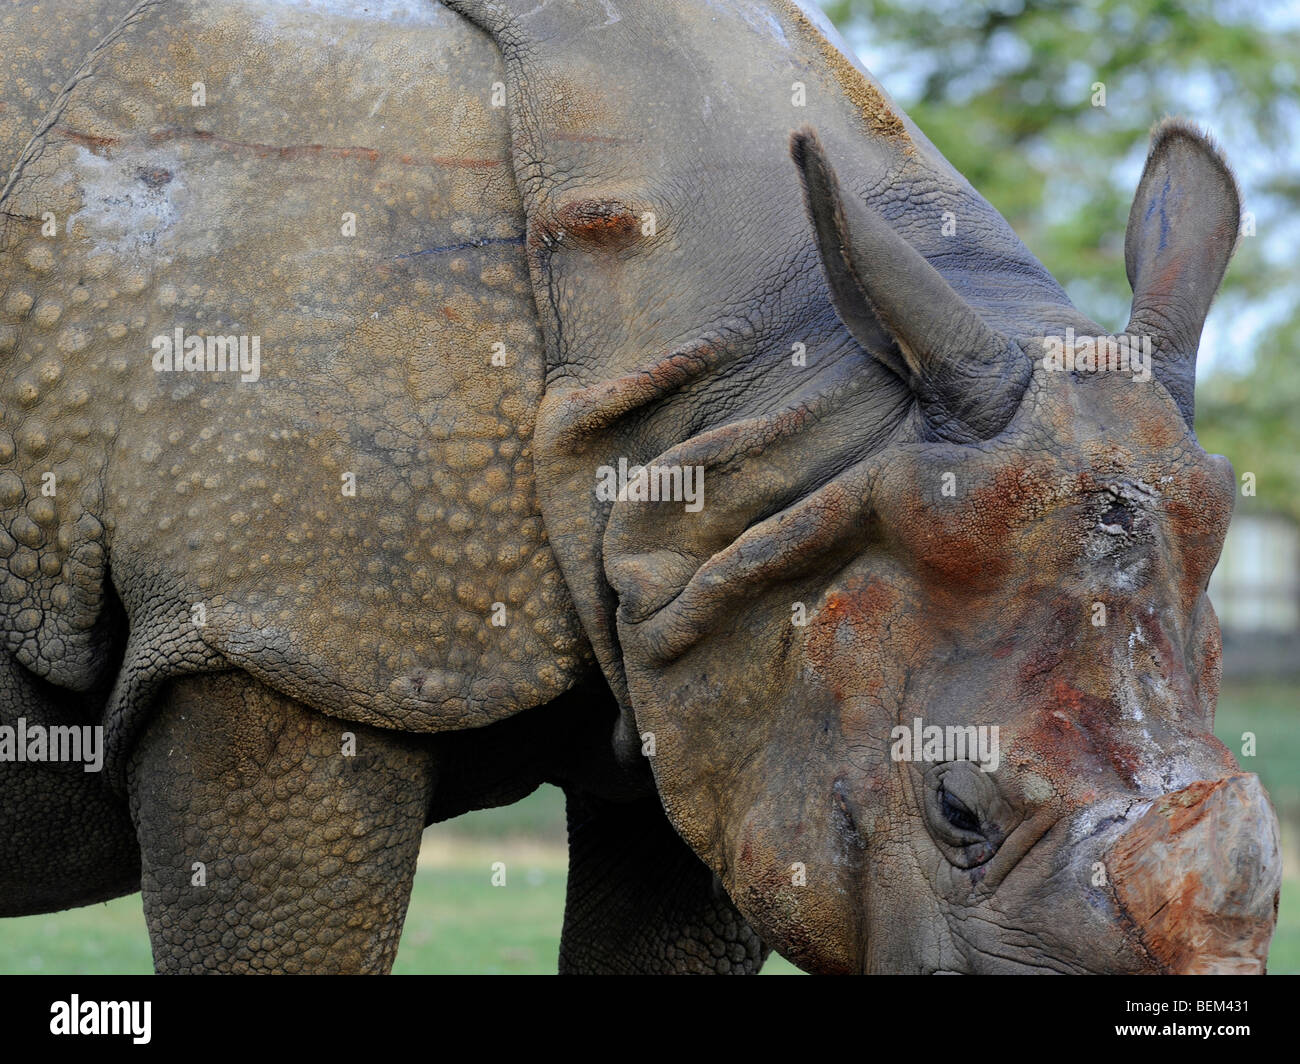 A rhino, covered in armour plating - Stock Image